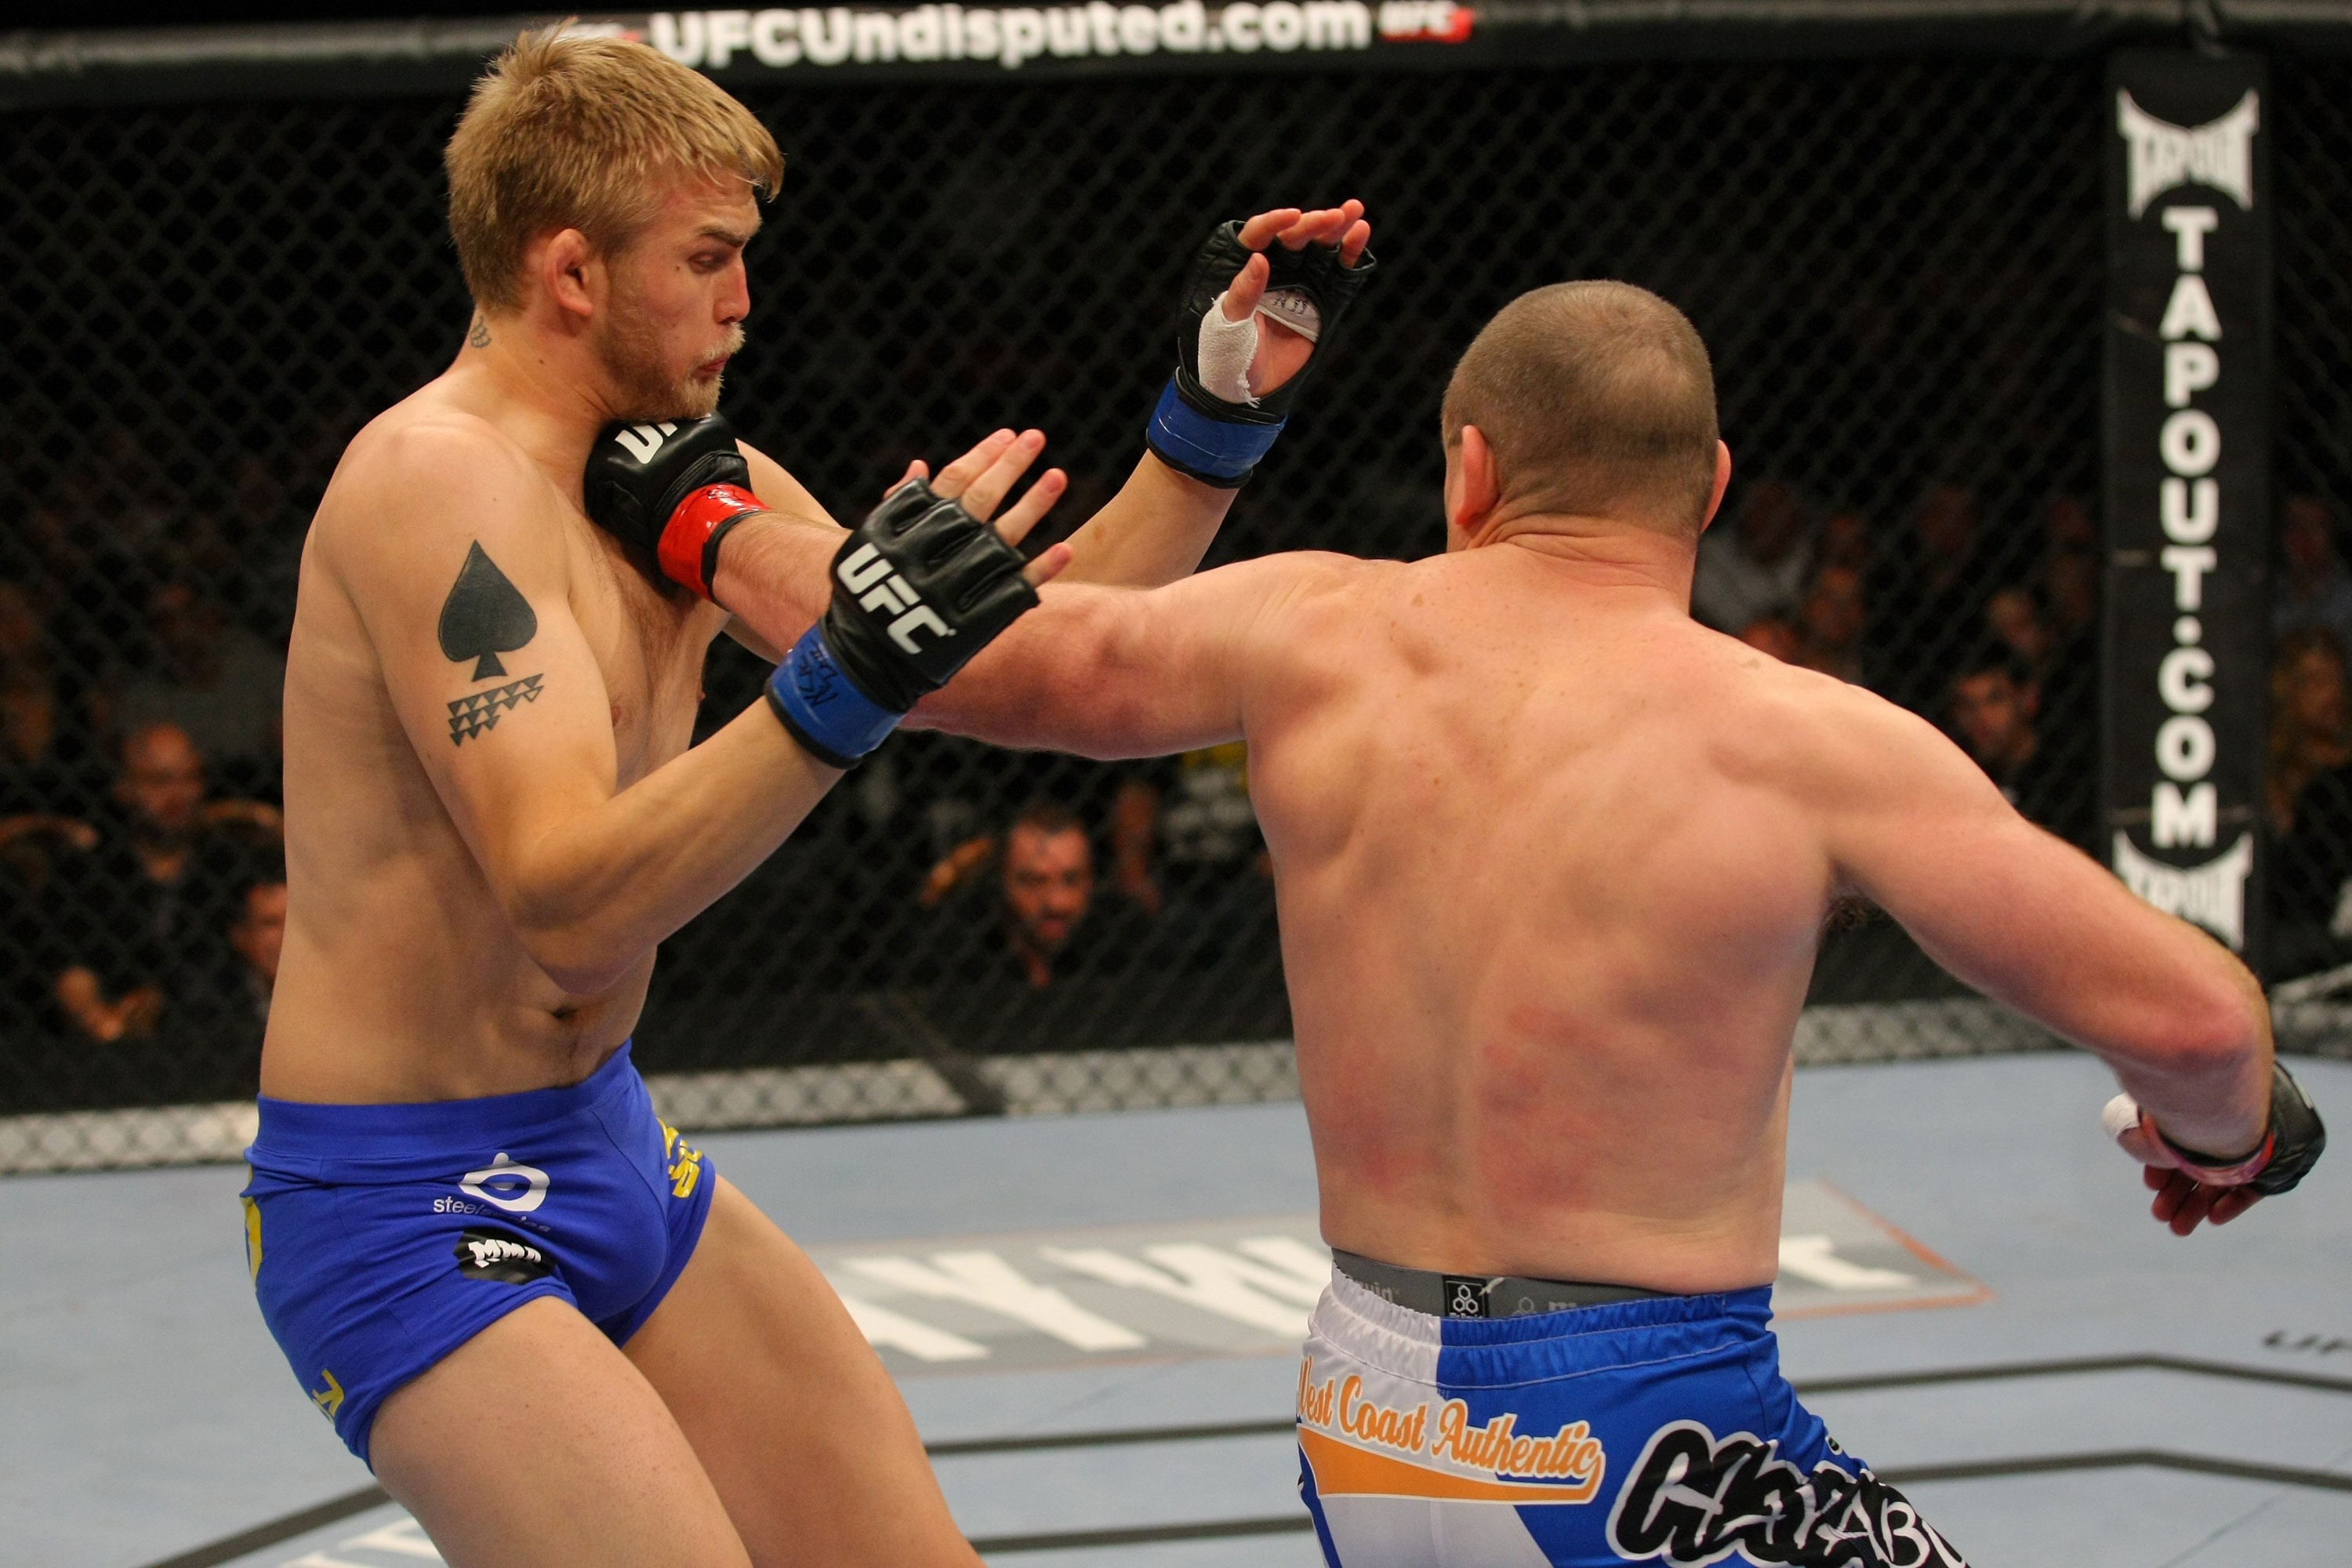 LAS VEGAS, NV - DECEMBER 30:  Vladimir Matyushenko (right) punches Alexander Gustafsson during the UFC 141 event at the MGM Grand Garden Arena on December 30, 2011 in Las Vegas, Nevada.  (Photo by Donald Miralle/Zuffa LLC/Zuffa LLC via Getty Images) *** Local Caption *** Vladimir Matyushenko; Alexander Gustafsson